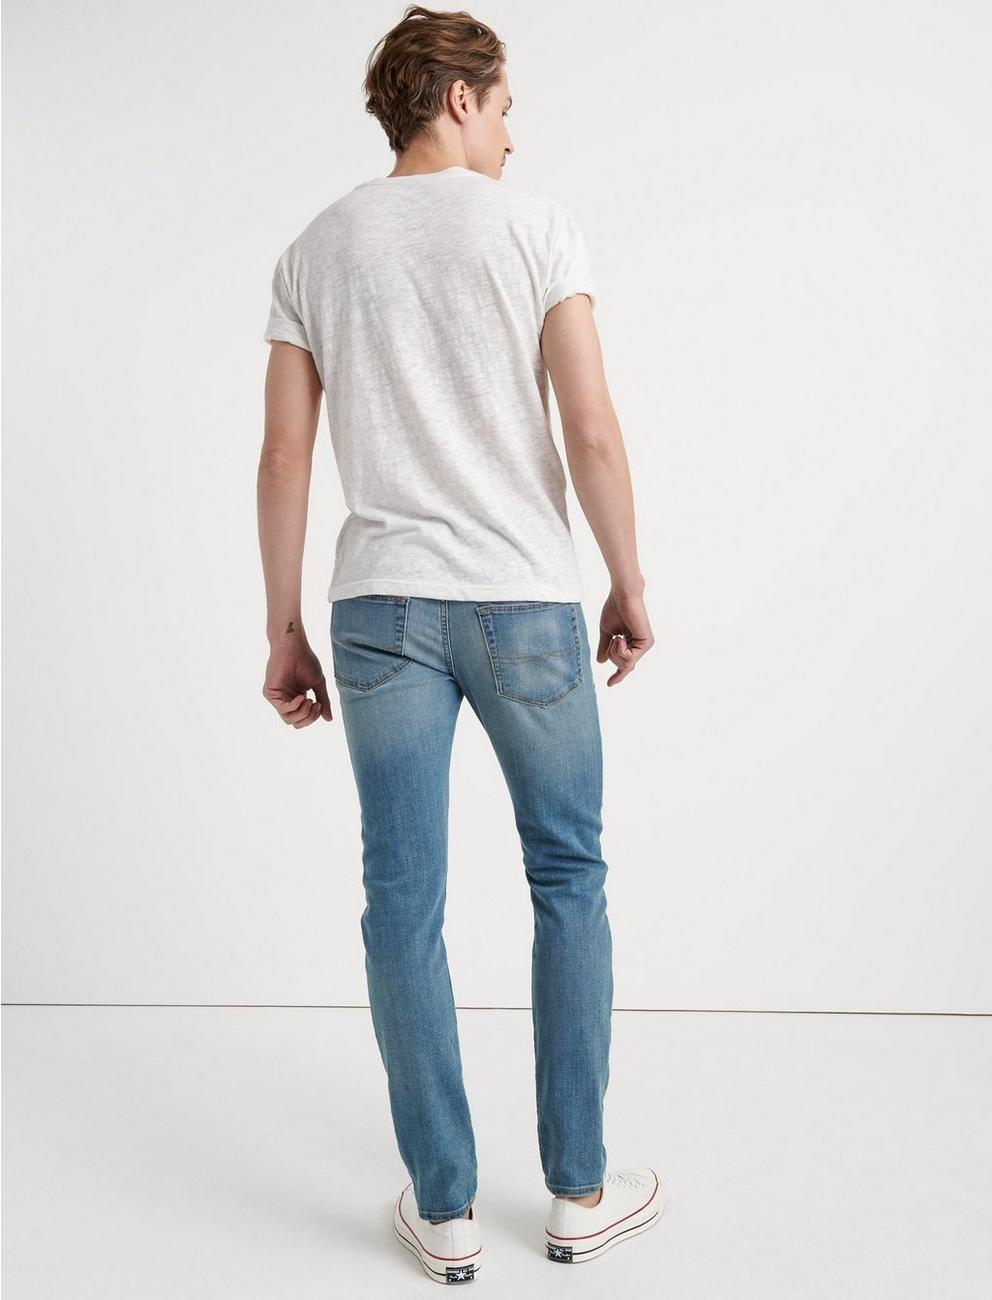 105 SLIM TAPER COOLMAX JEAN, RED MOUNTAIN